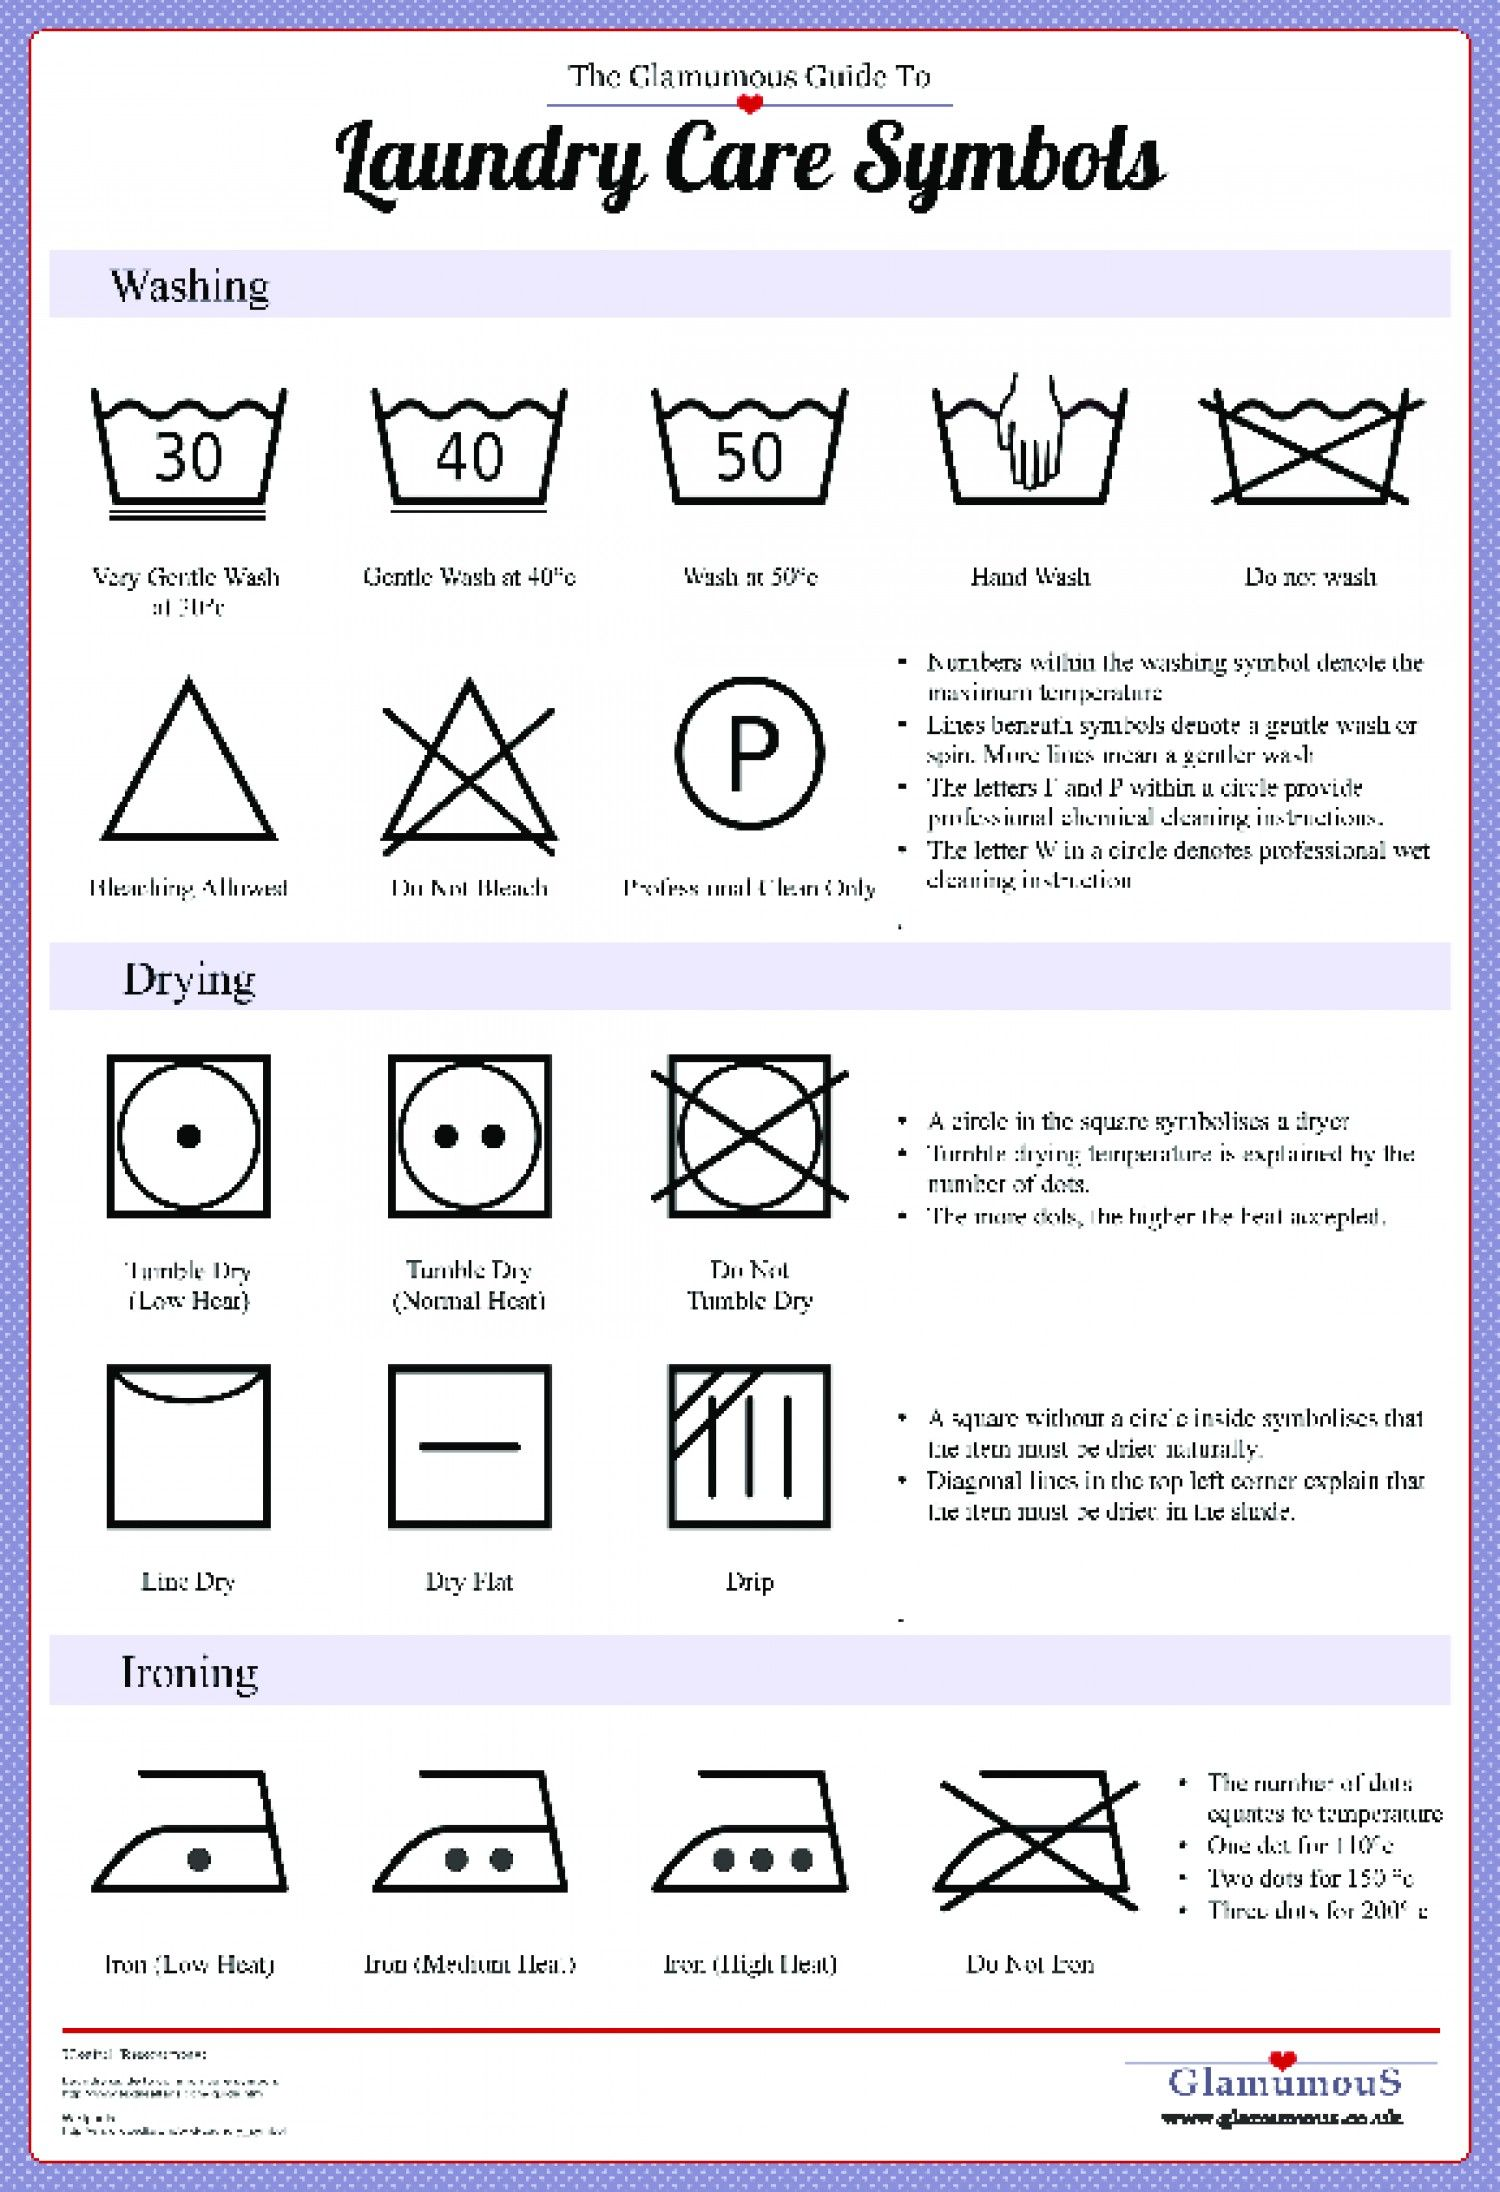 Astm guide to care symbols choice image symbol and sign ideas guide to laundry care symbols cleaning pinterest laundry guide to laundry care symbols buycottarizona choice image buycottarizona Choice Image